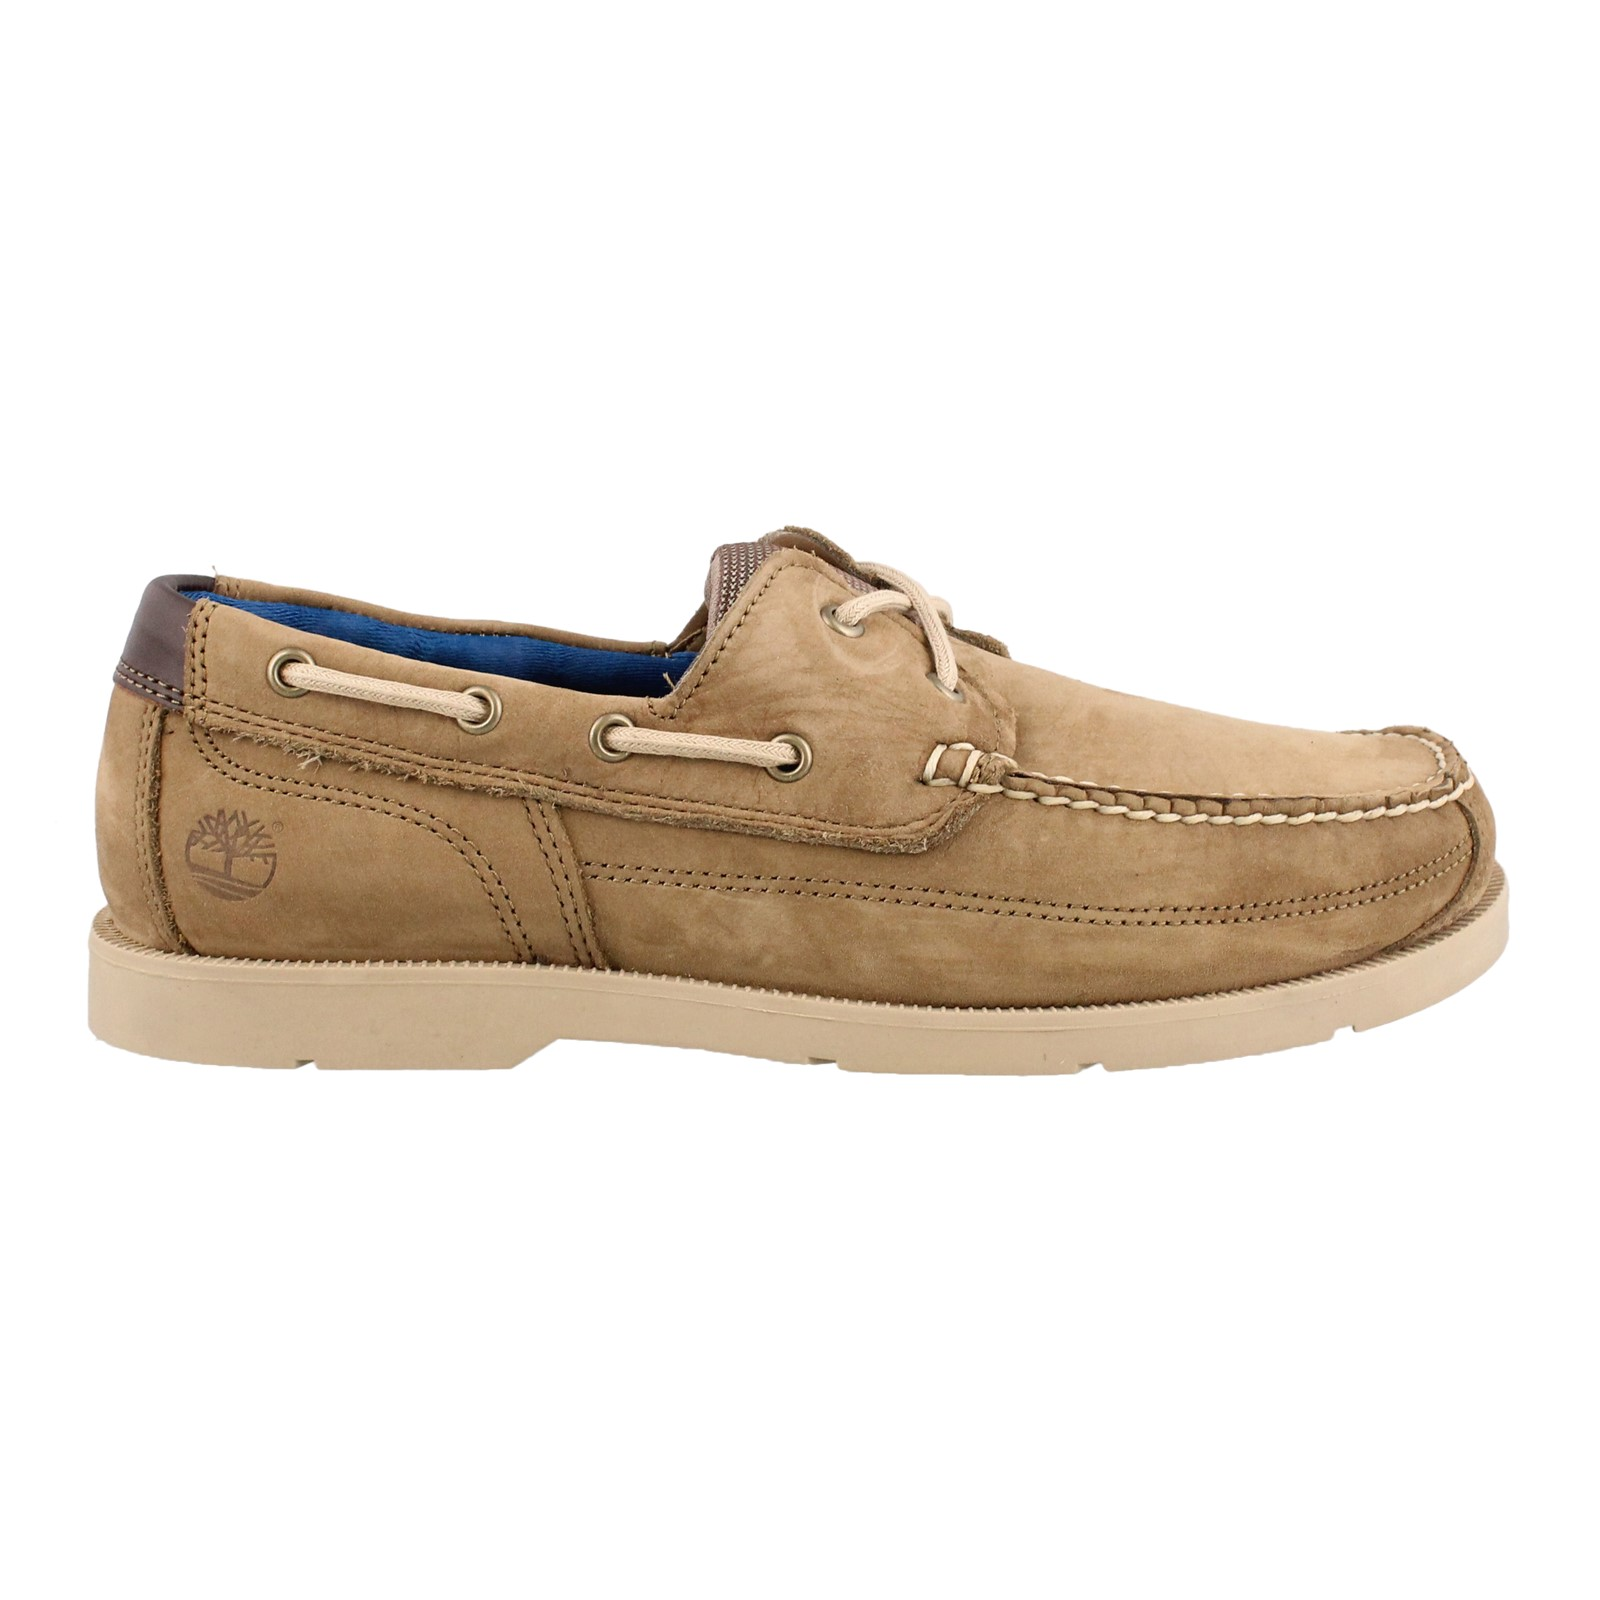 Men's Timberland, Piper Cove Boat Shoes